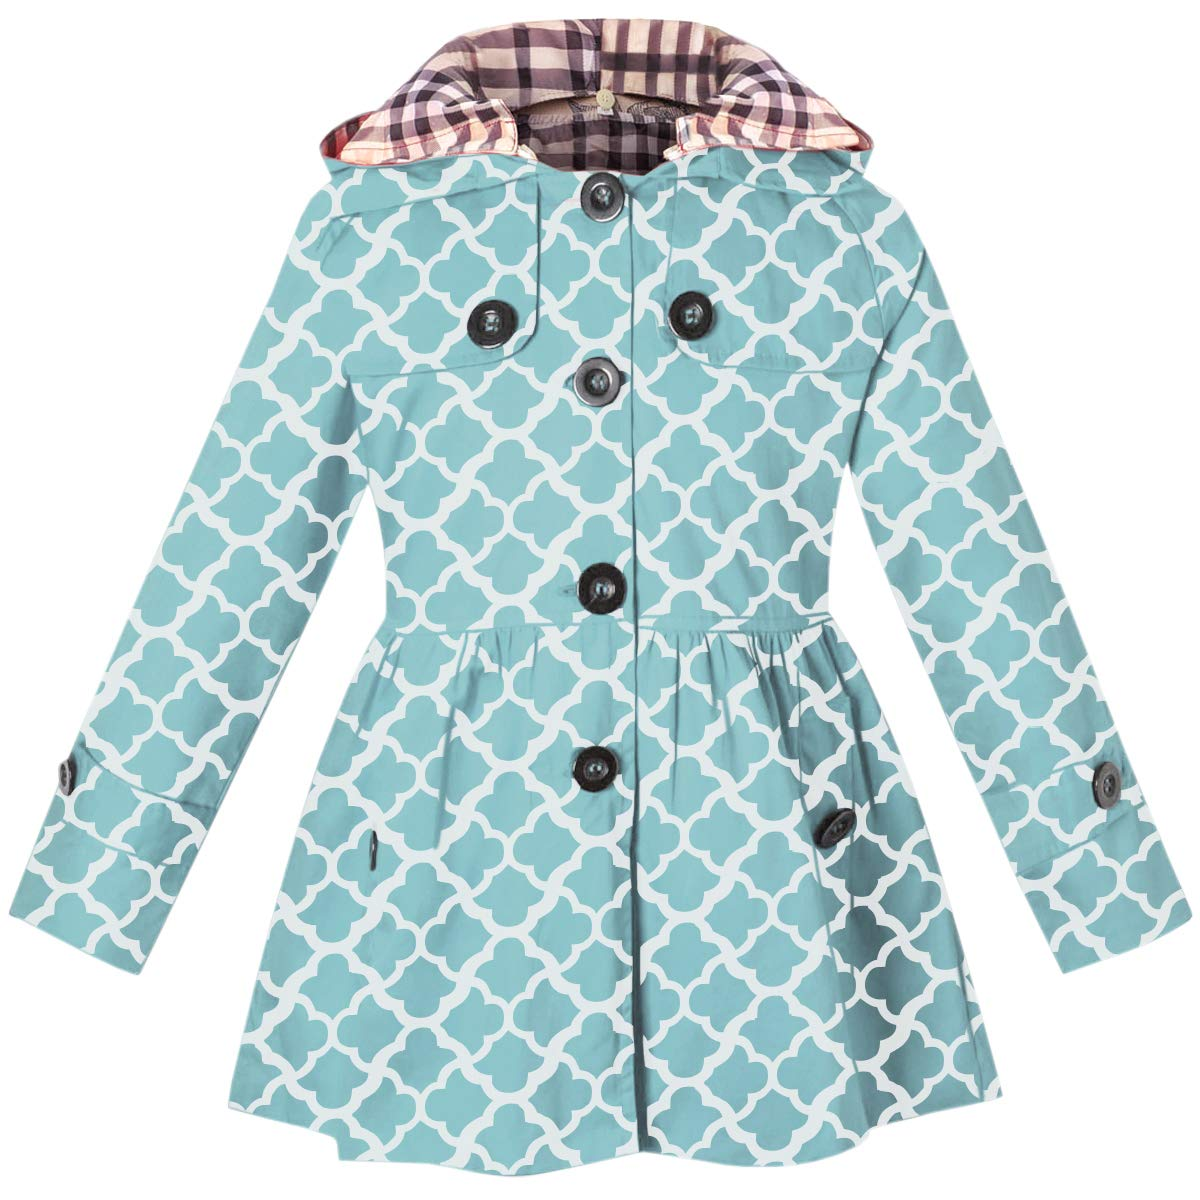 e7b46e3c20b6 Amazon.com  BINPAW Girl s Hooded Trench Coat  Clothing